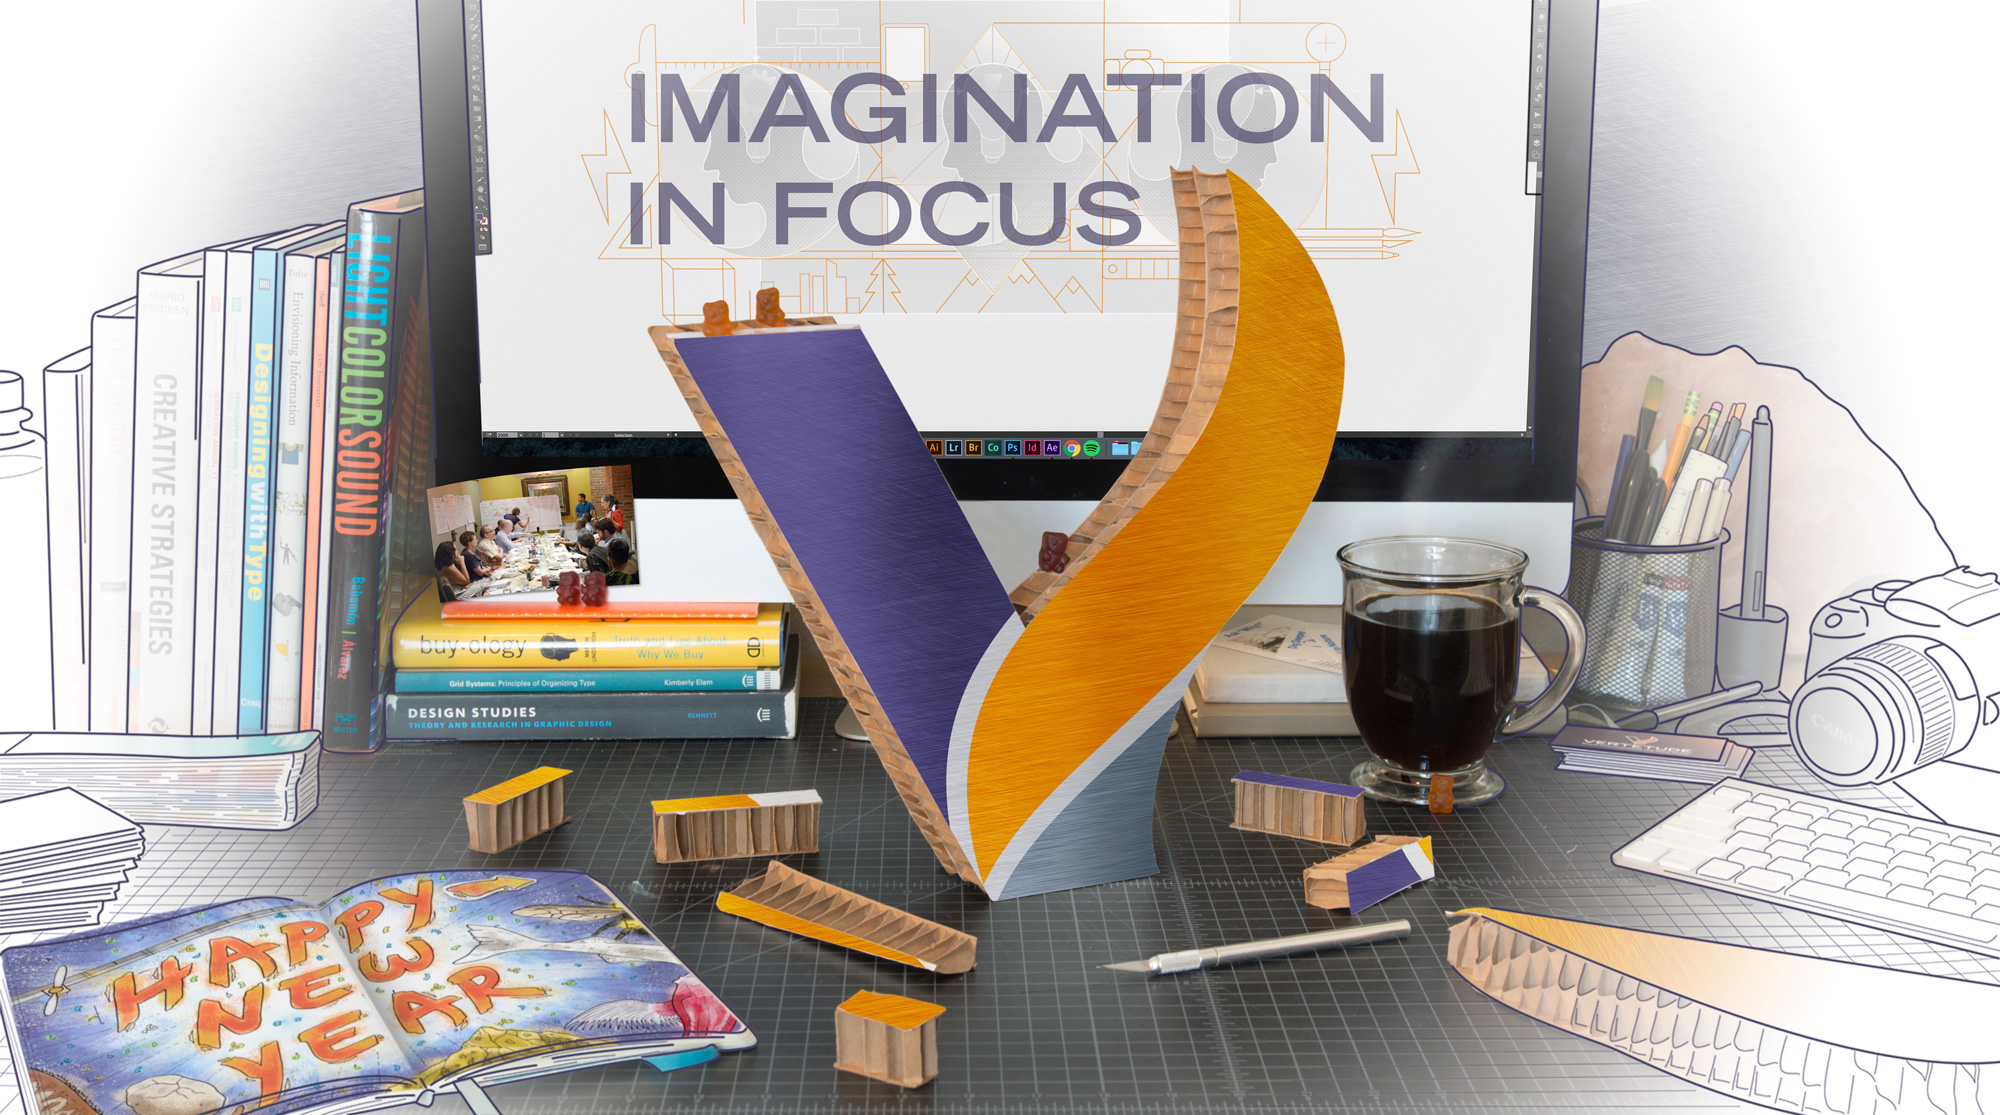 Imagination in focus photo and illustration of Seattle design space